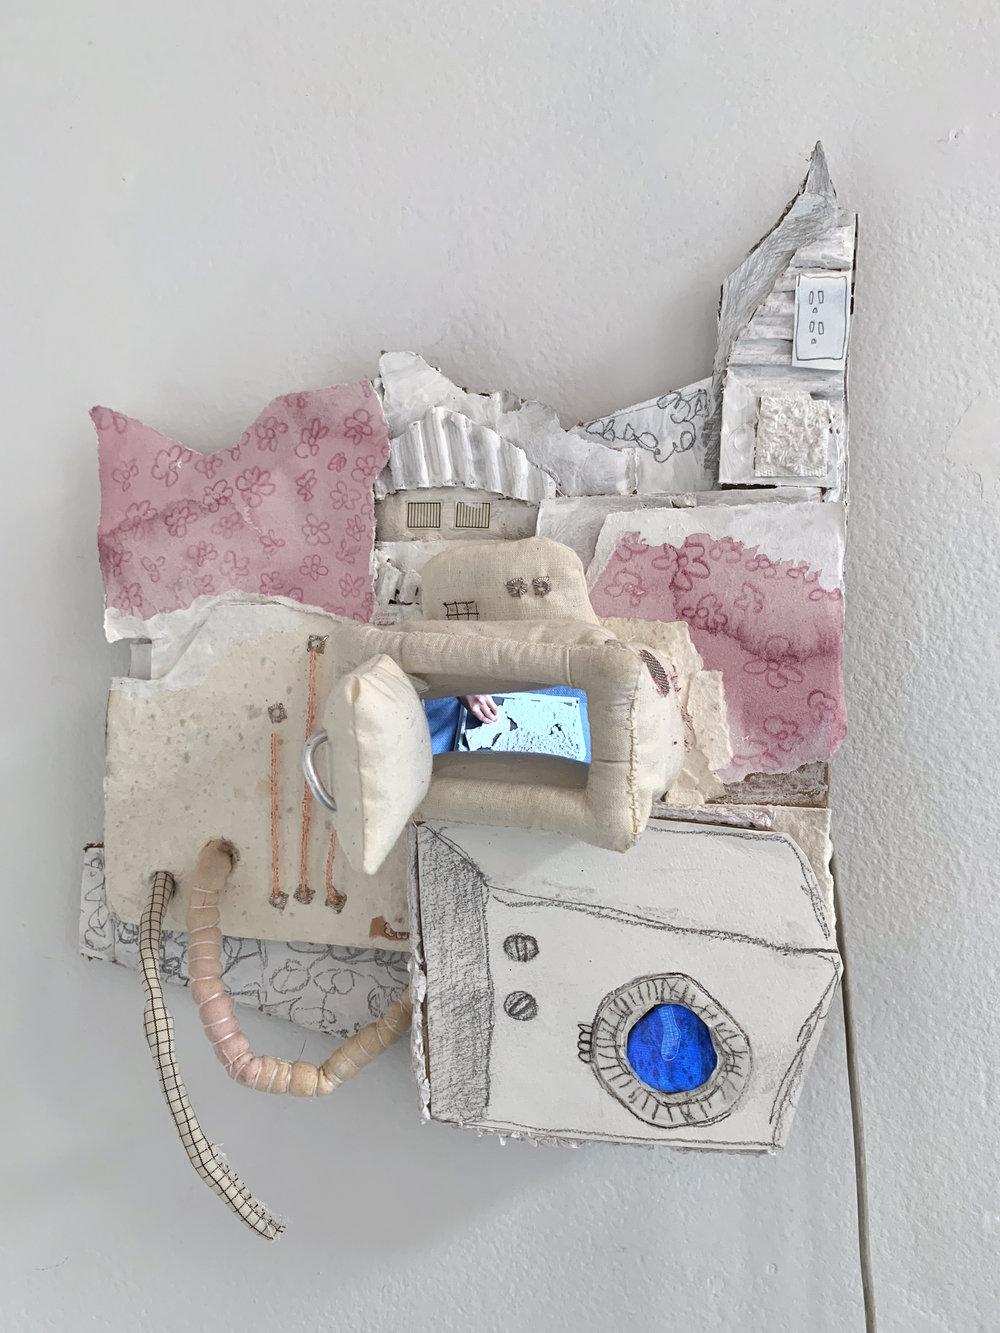 Untitled 3,  cardboard, paper, watercolor, beads, paint, fabric, graphite, video, picture slideshow, 2018  In collaboration with Rachel Wilkins